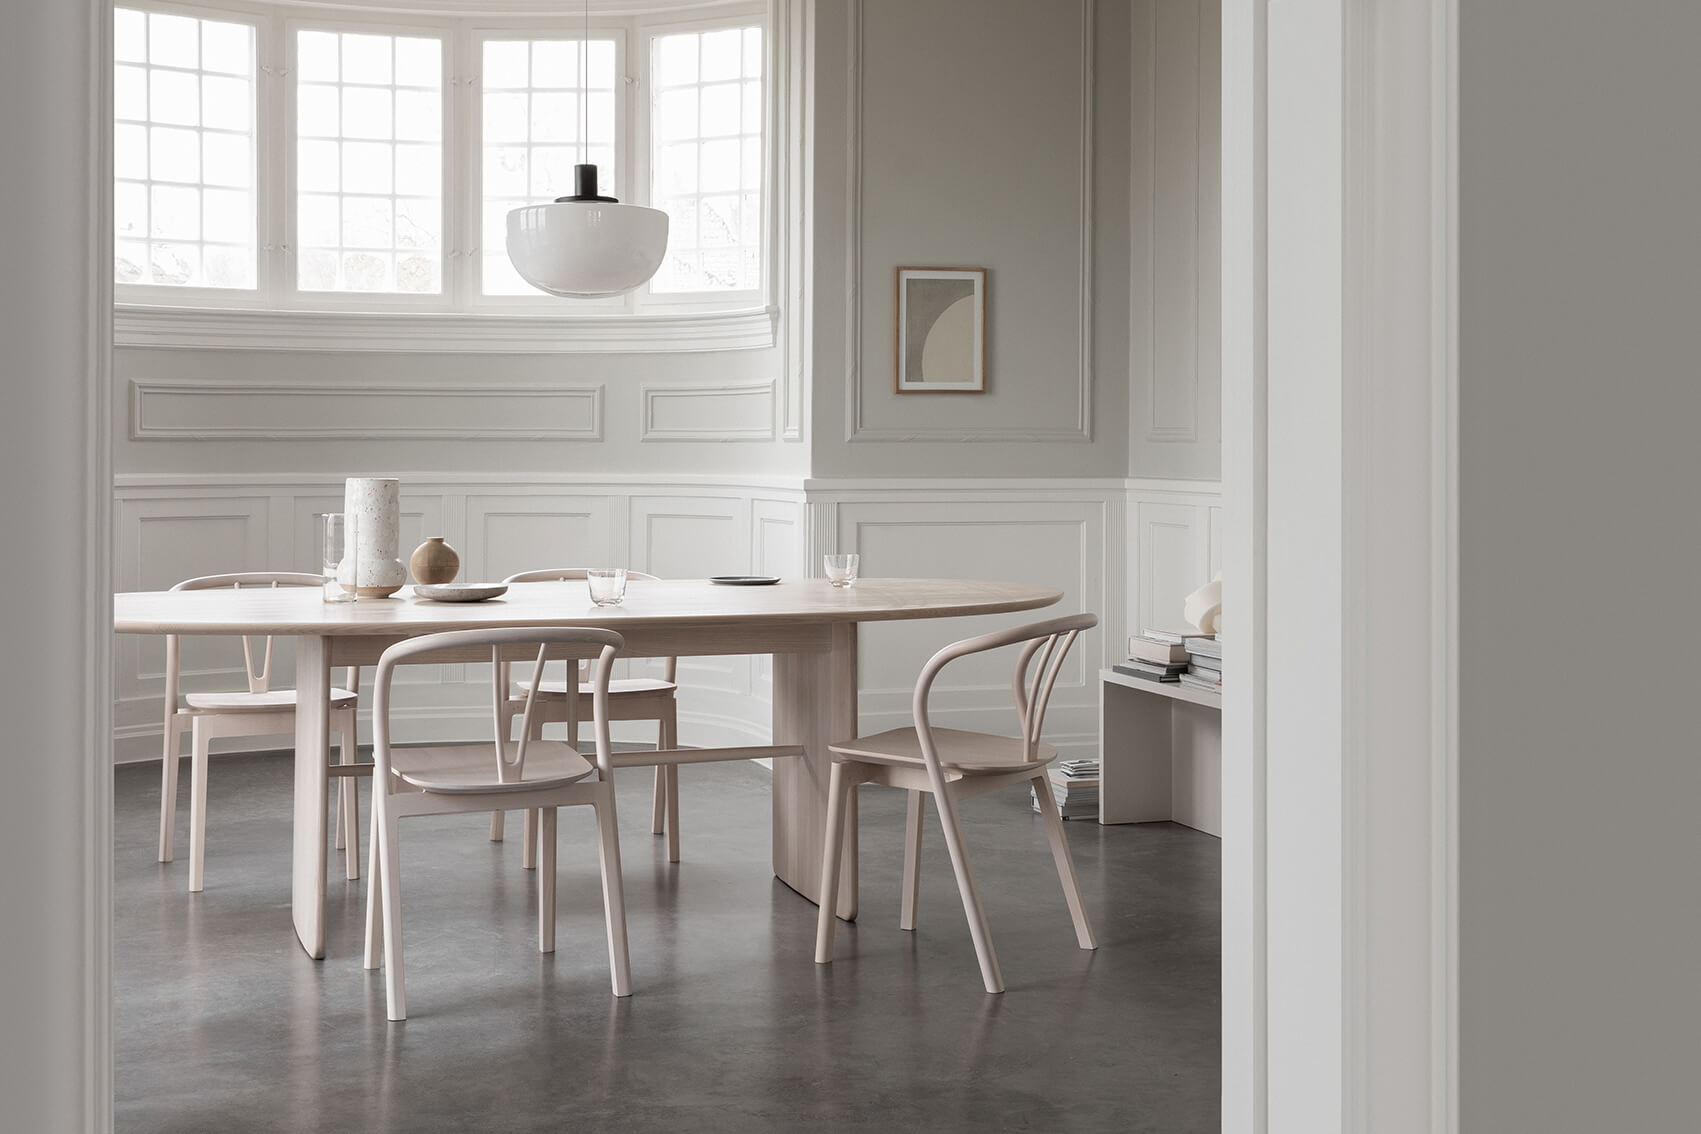 Ercol Pennon Table by Norm Architects with Flow Chairs by Tomoko Azuri.